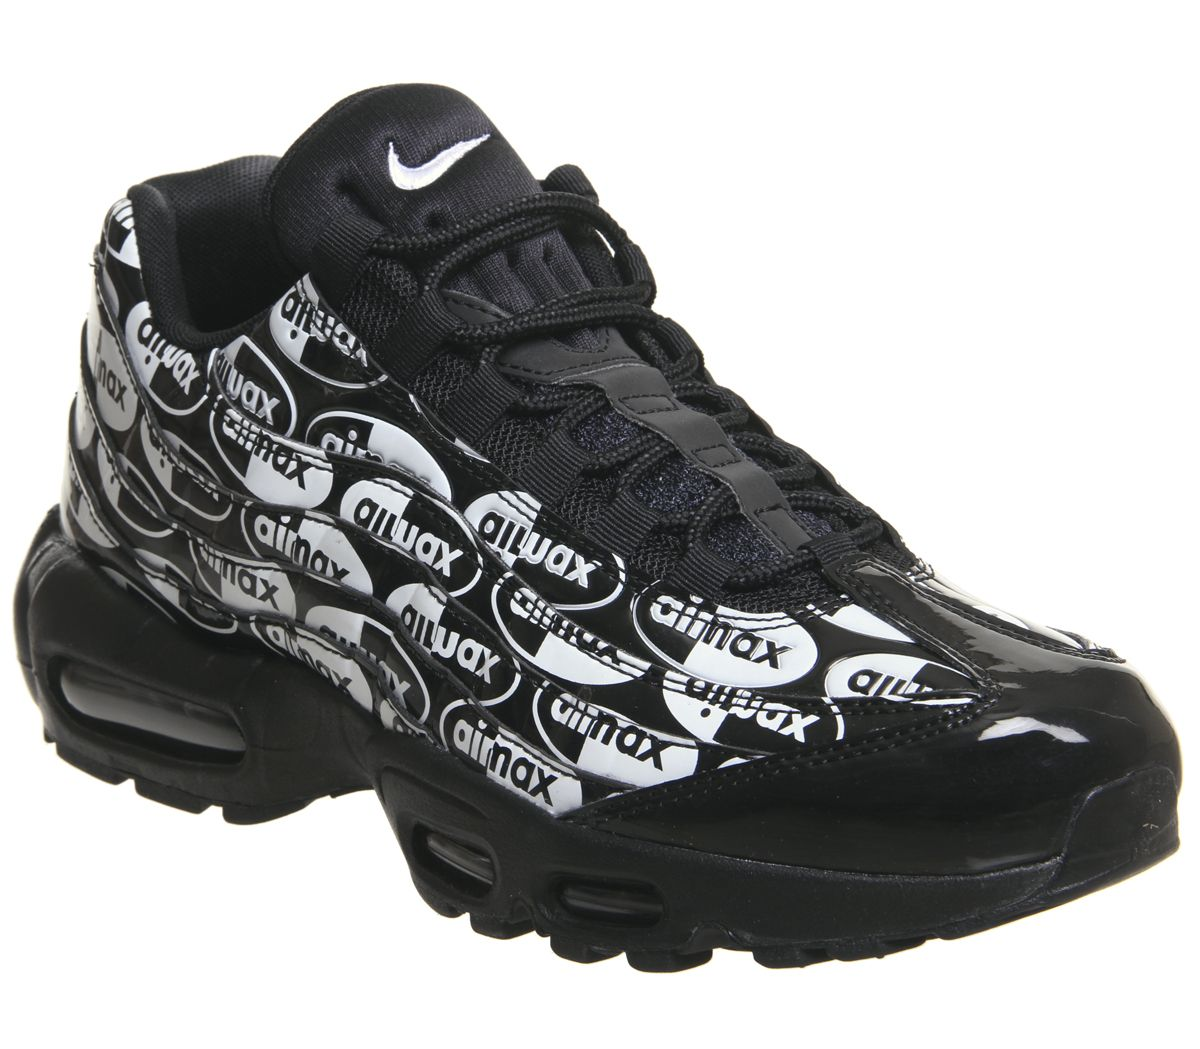 info for 1d188 c9fa1 Air Max 95 Trainers